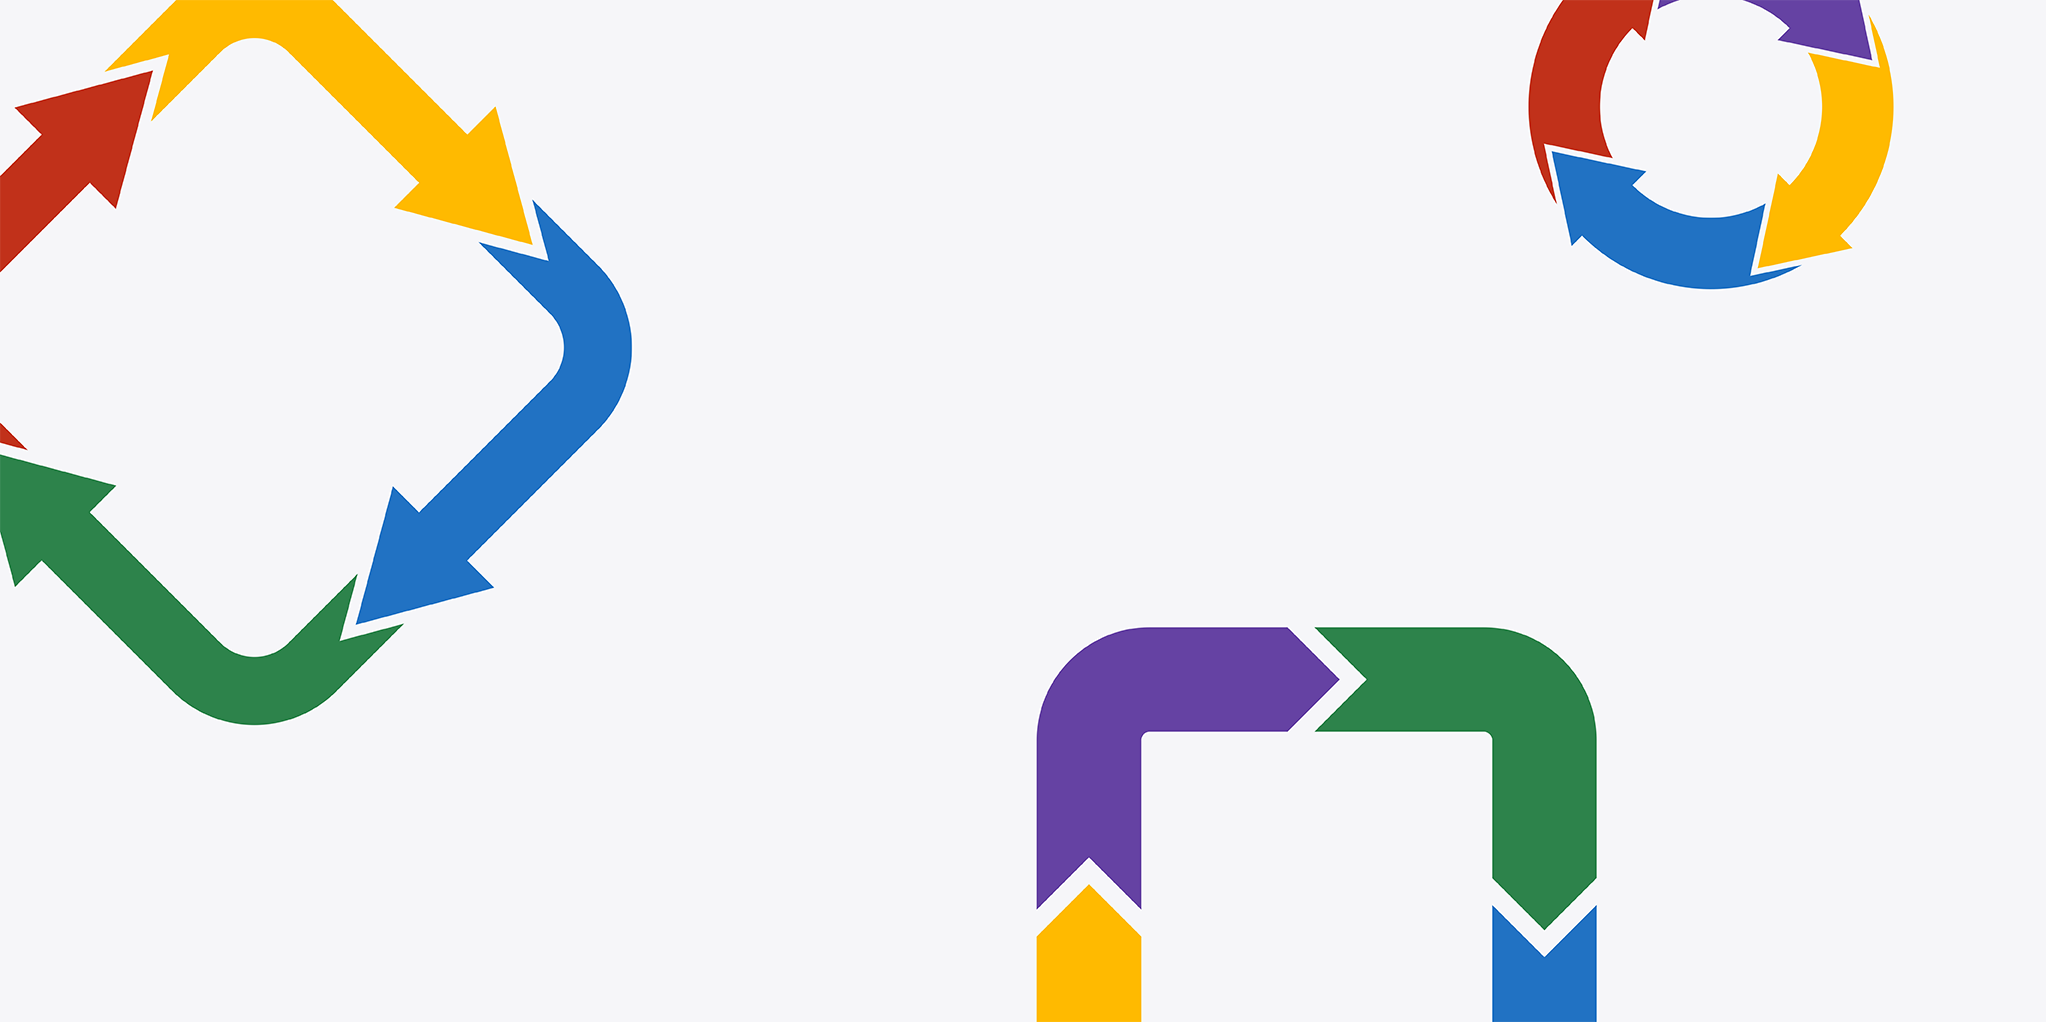 Colorful arrows depicting repurposing and flow from one into another.